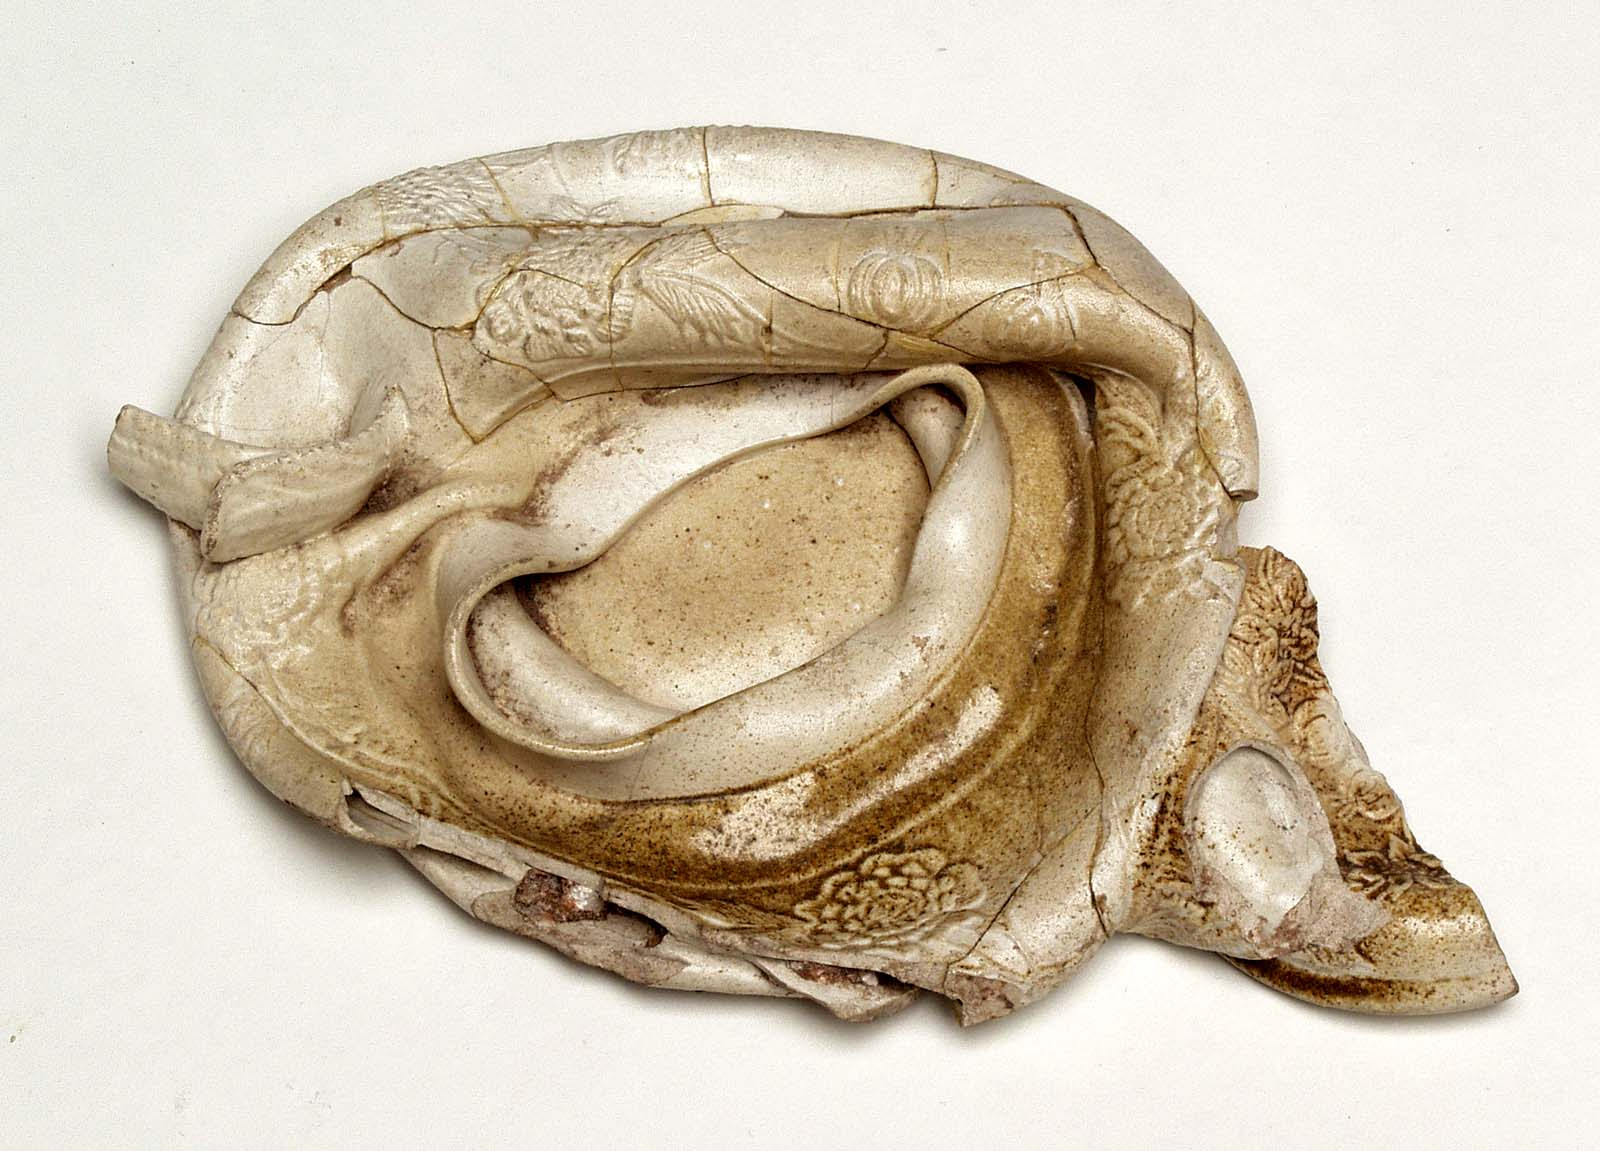 photo of a twisted and miscast piece of ceramic ware